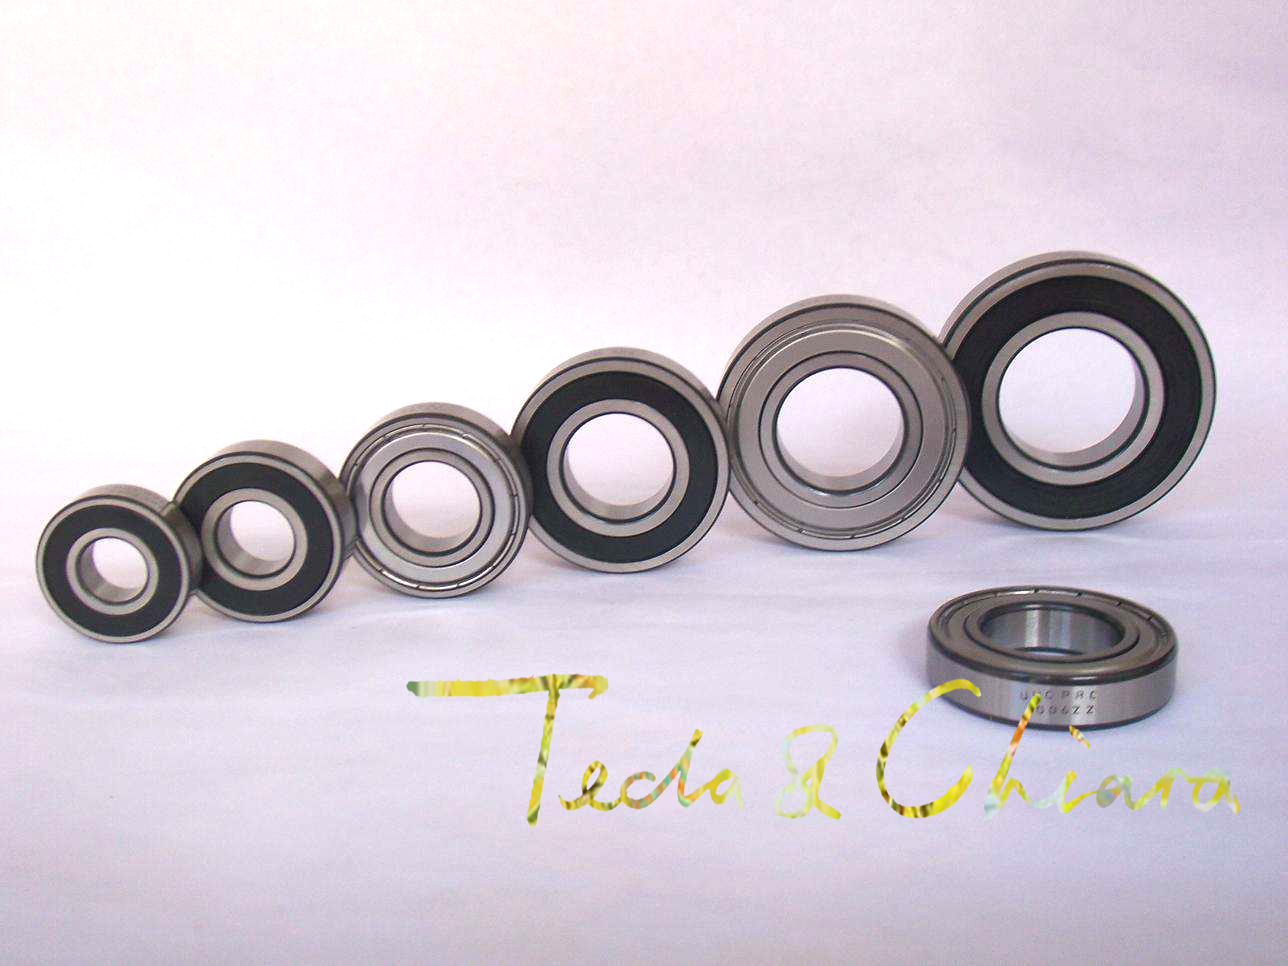 623 623ZZ 623RS 623-2Z 623Z 623-2RS ZZ RS RZ 2RZ Deep Groove Ball Bearings 3 x 10 x 4mm High Quality gcr15 6328 zz or 6328 2rs 140x300x62mm high precision deep groove ball bearings abec 1 p0